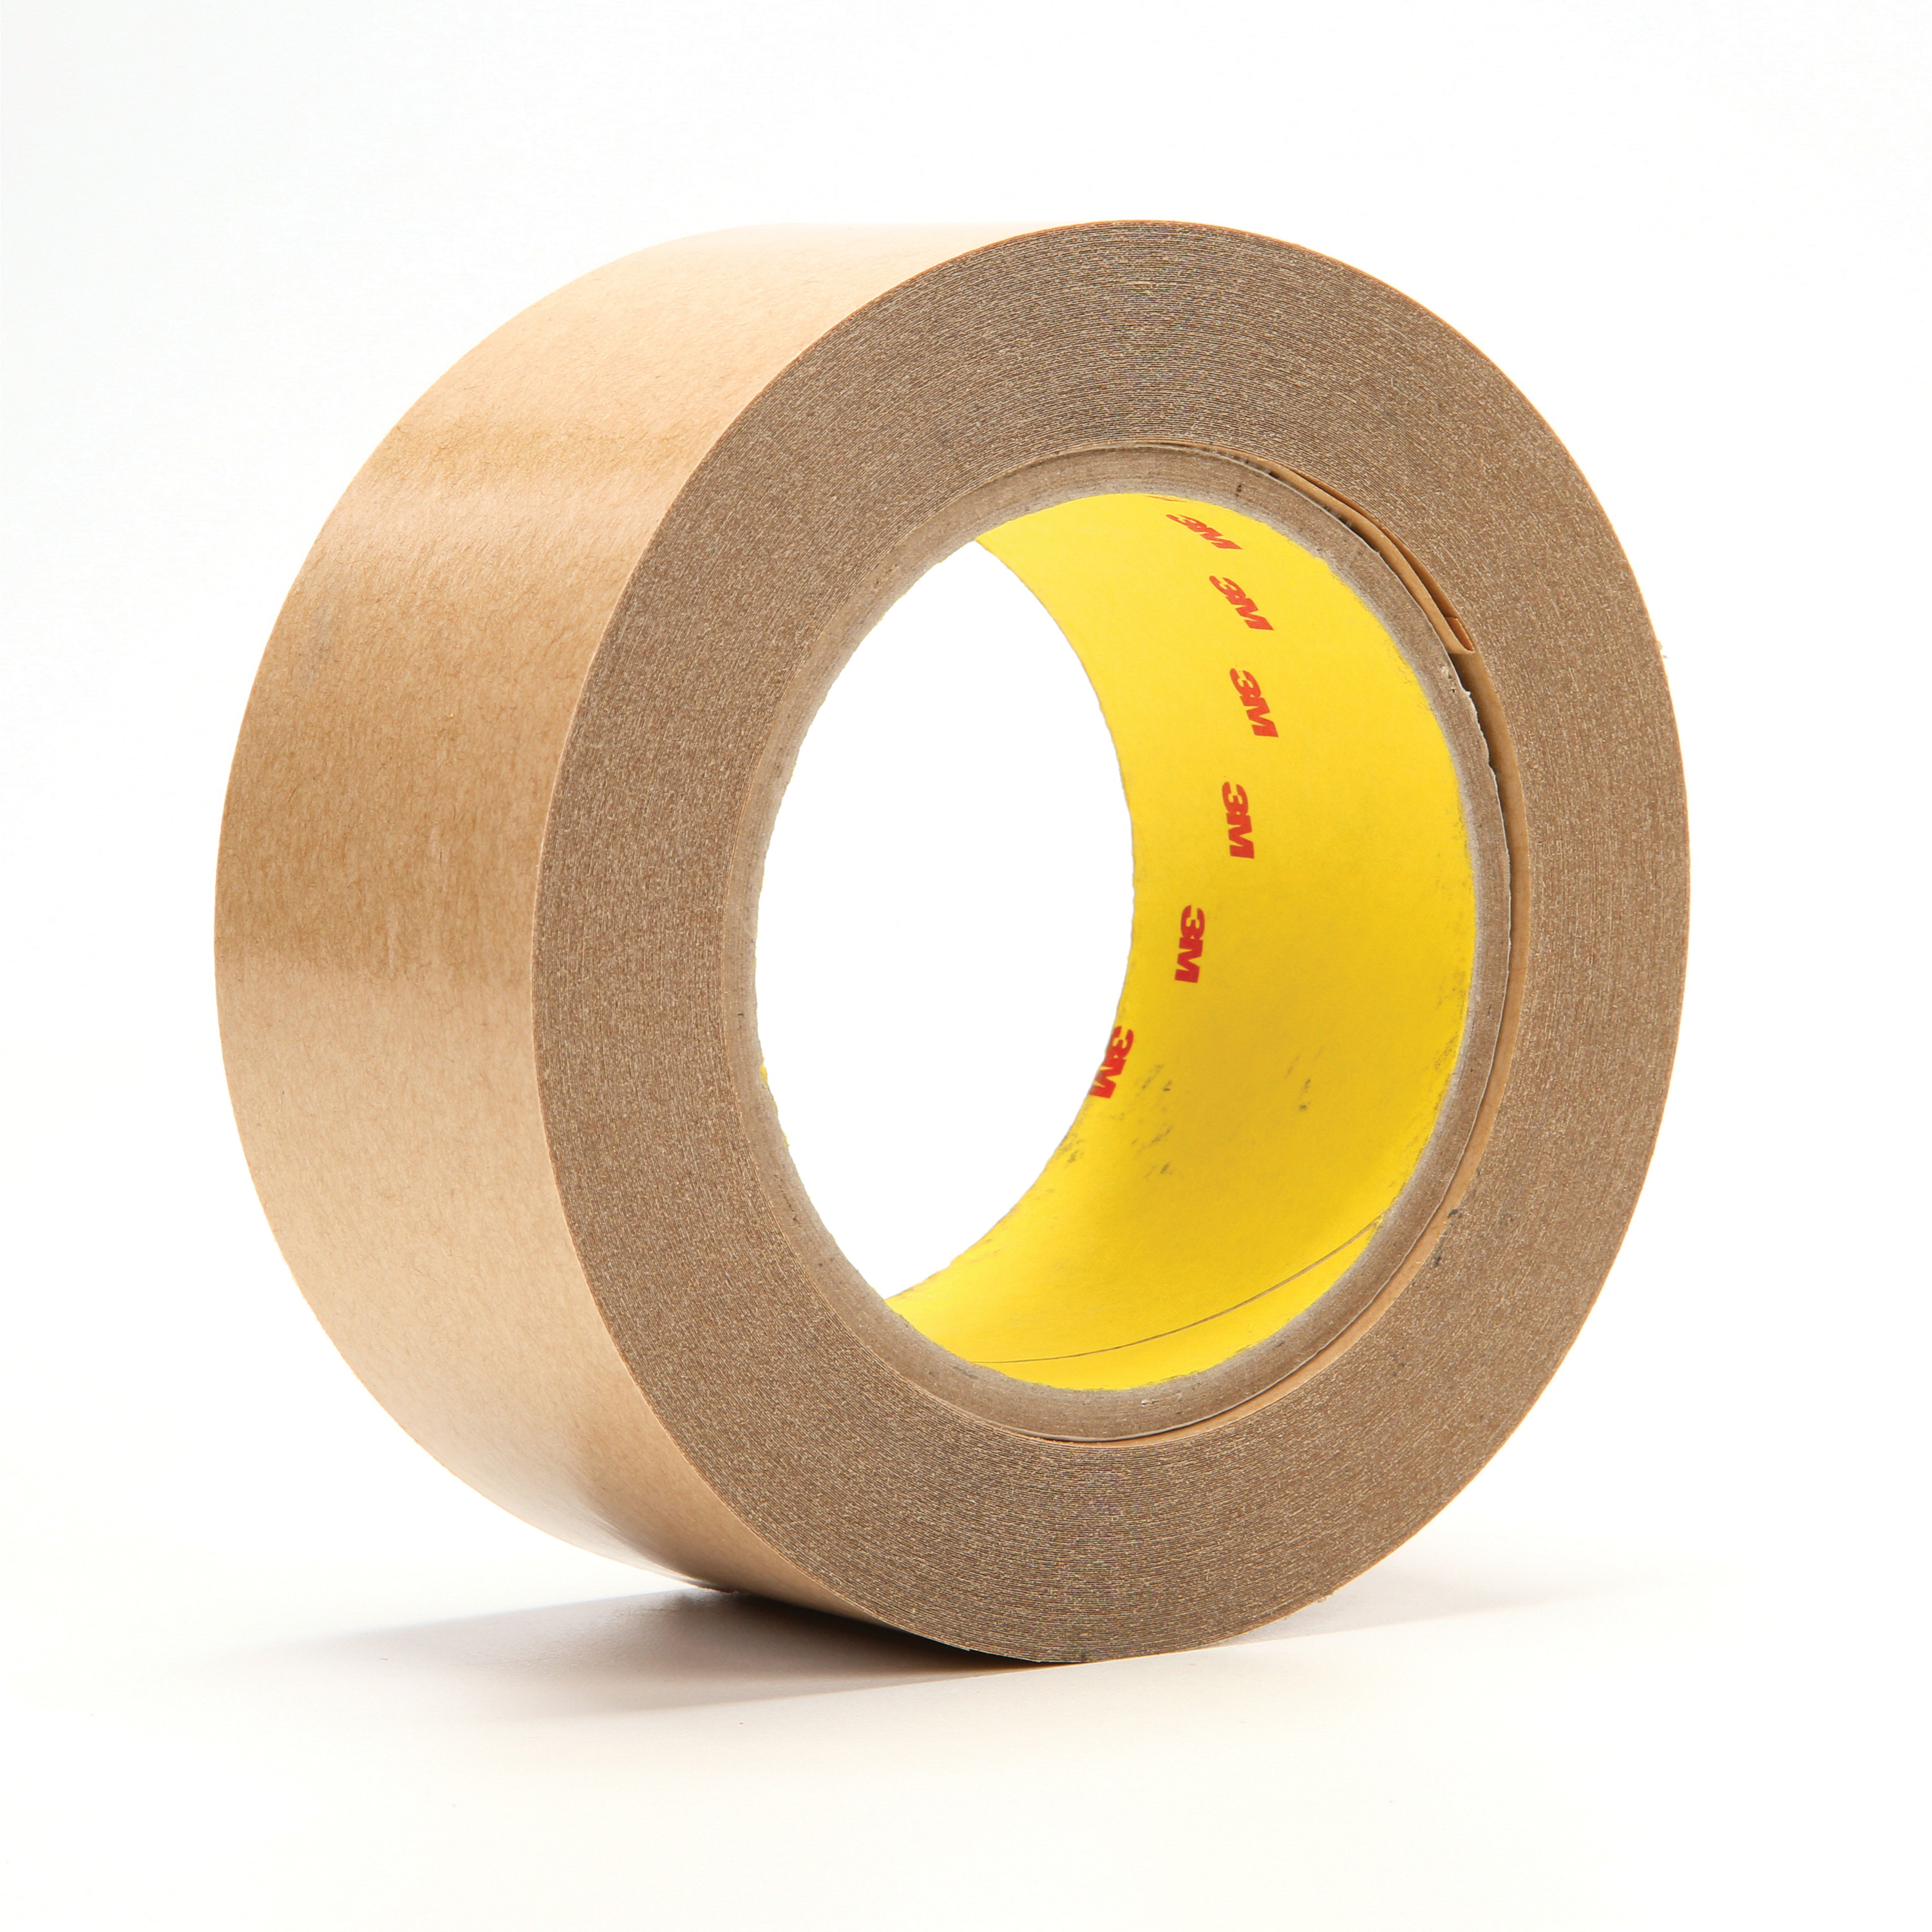 3M™ 021200-04294 Non-Repulpable Double Coated Splicing Tape, 36 yd L x 2 in W, 4 mil THK, 400HT Acrylic Adhesive, Polyester Film Backing, Clear